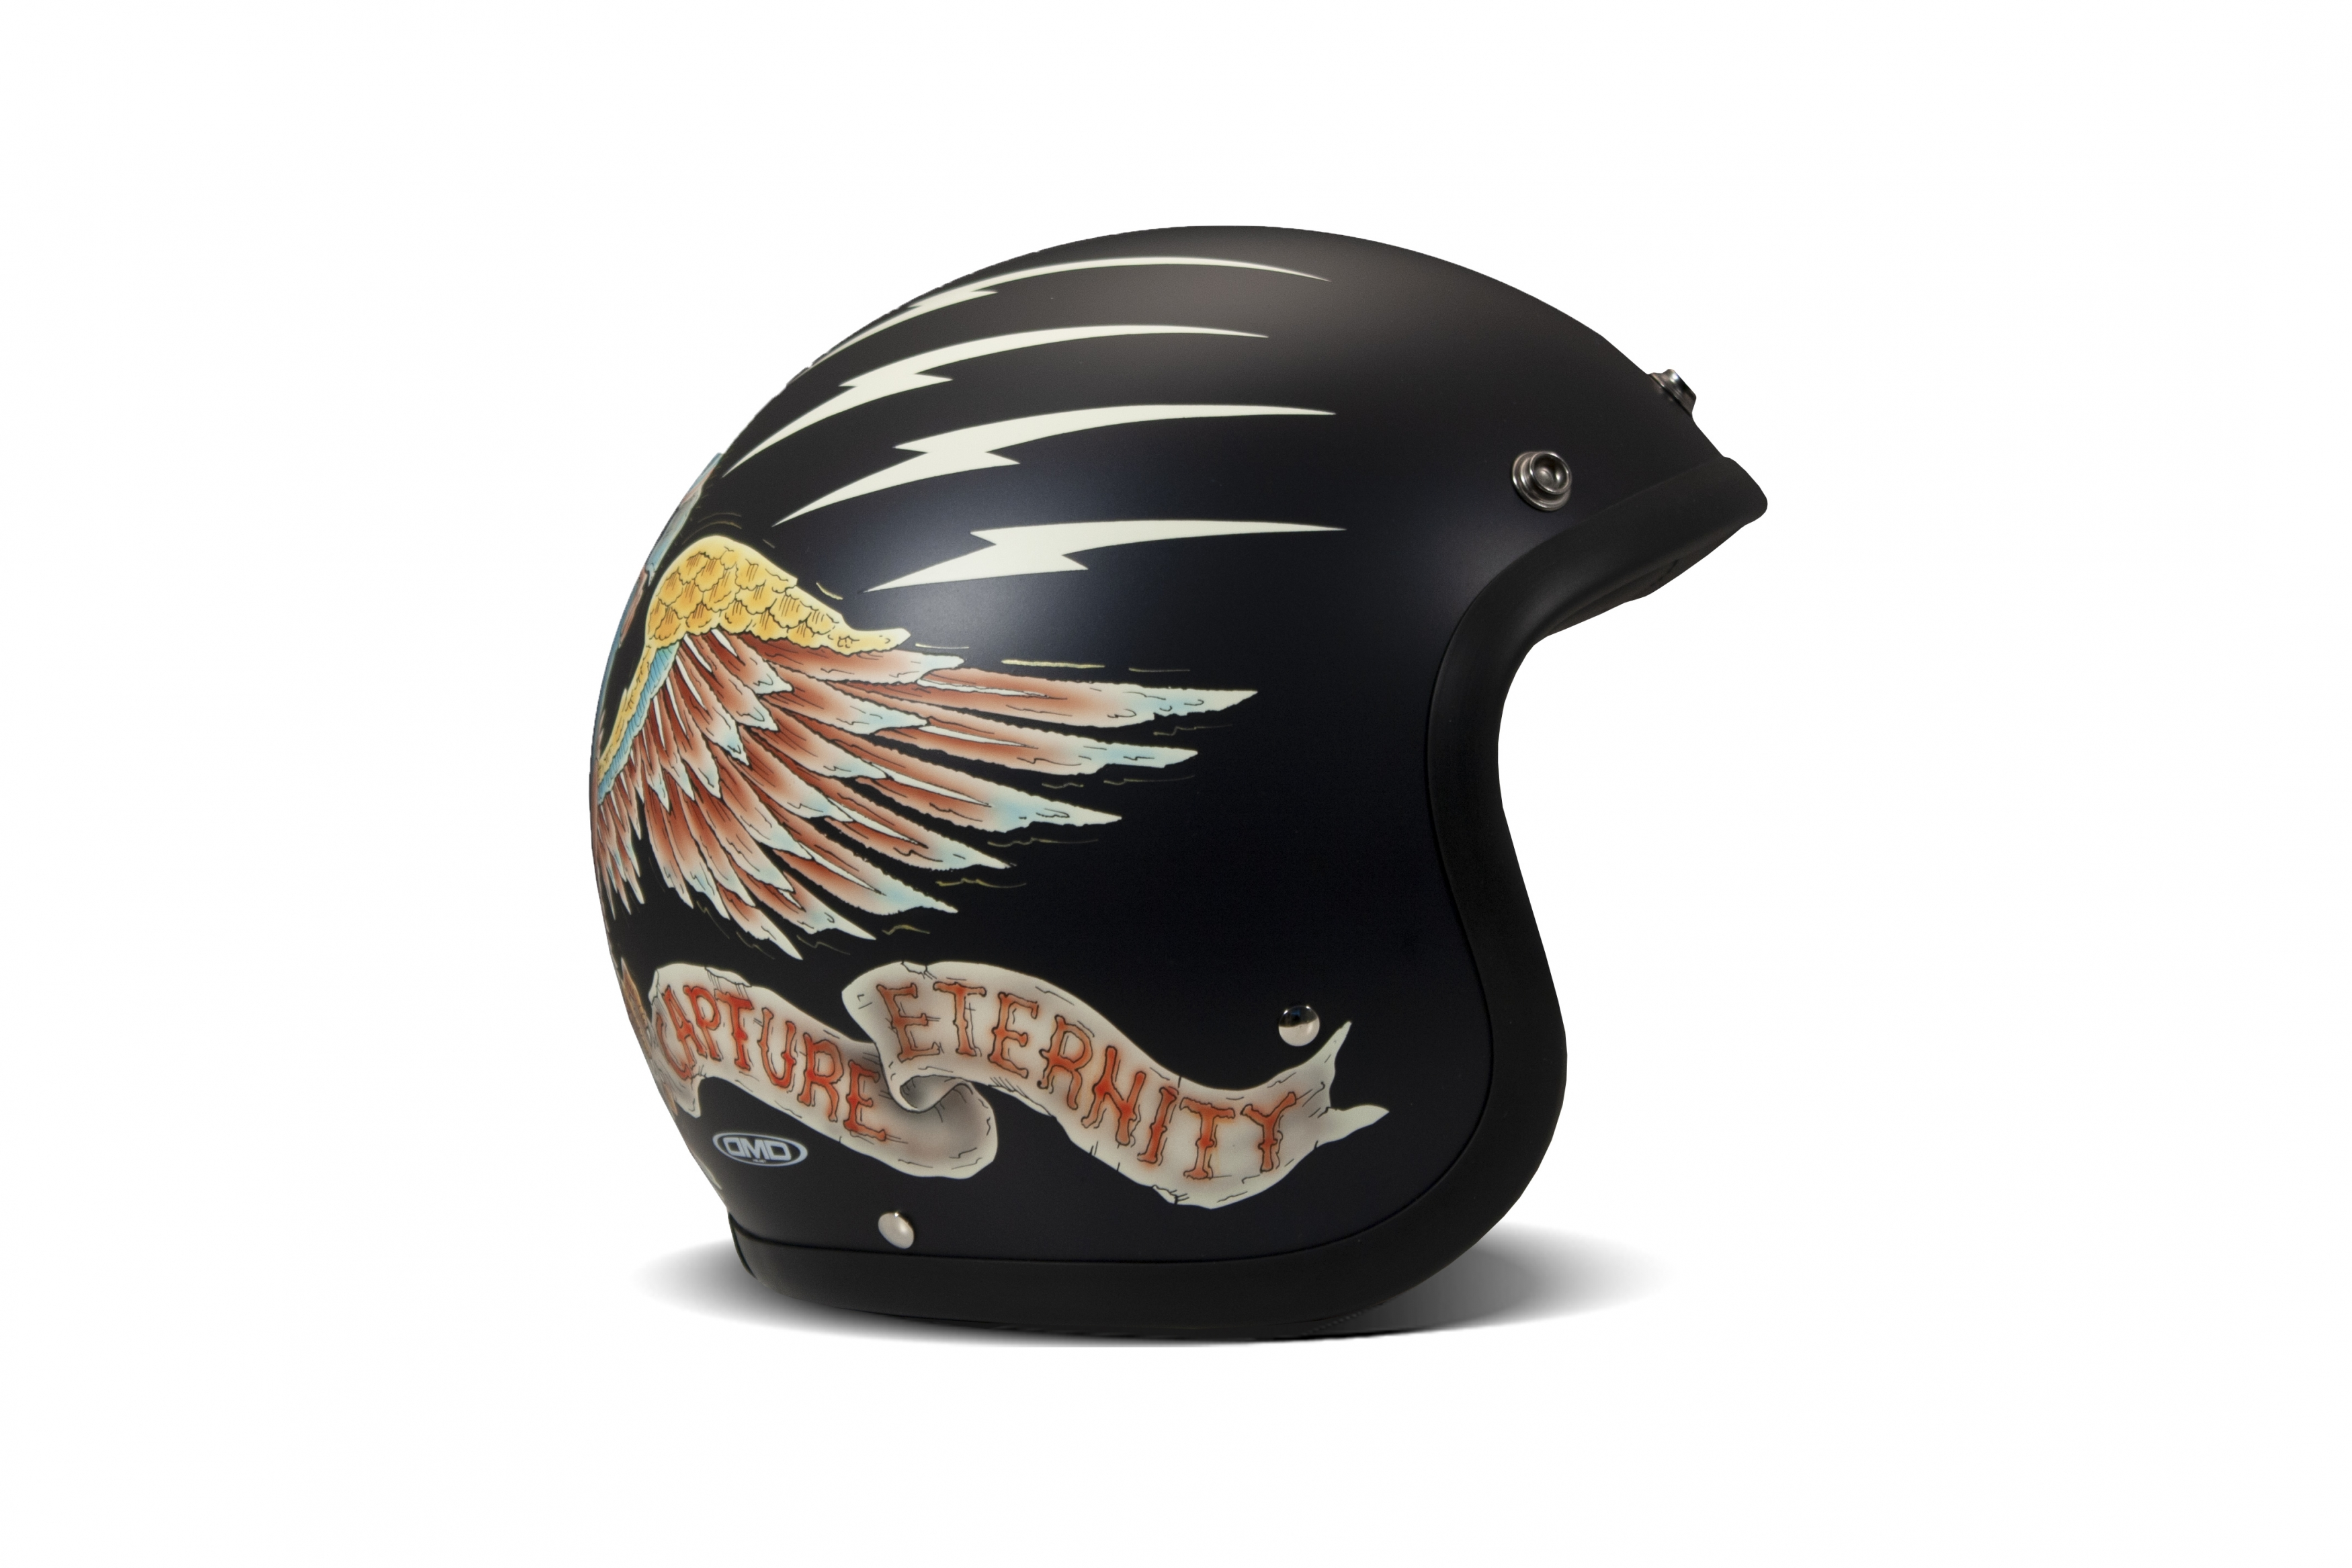 Casco jet DMD Vintage EAGLE 1